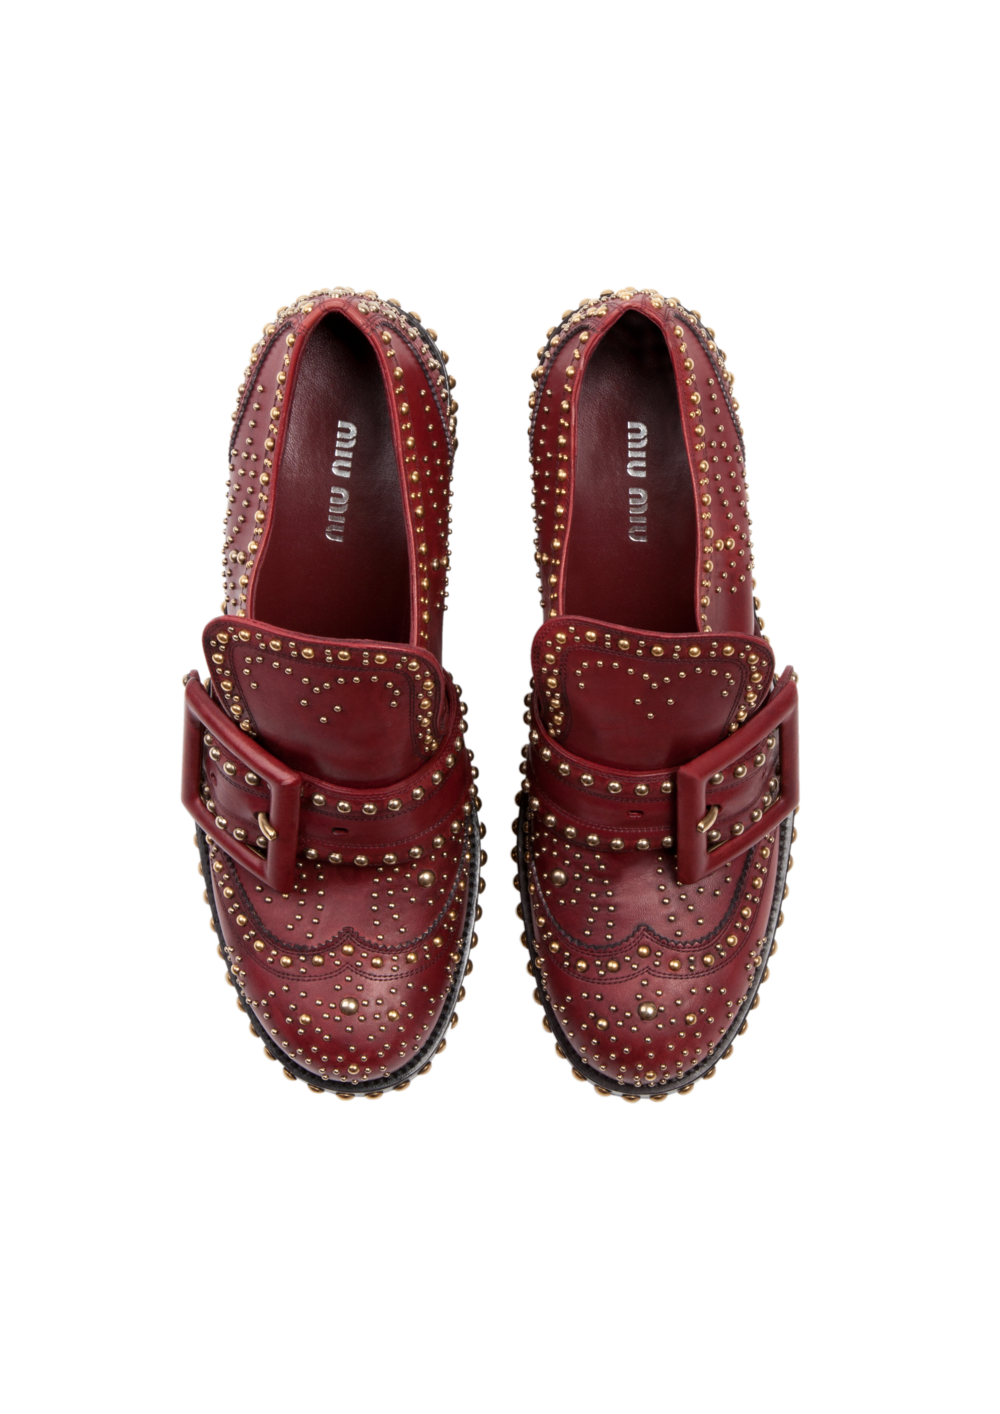 miumiu-shoes-redstud-18.png